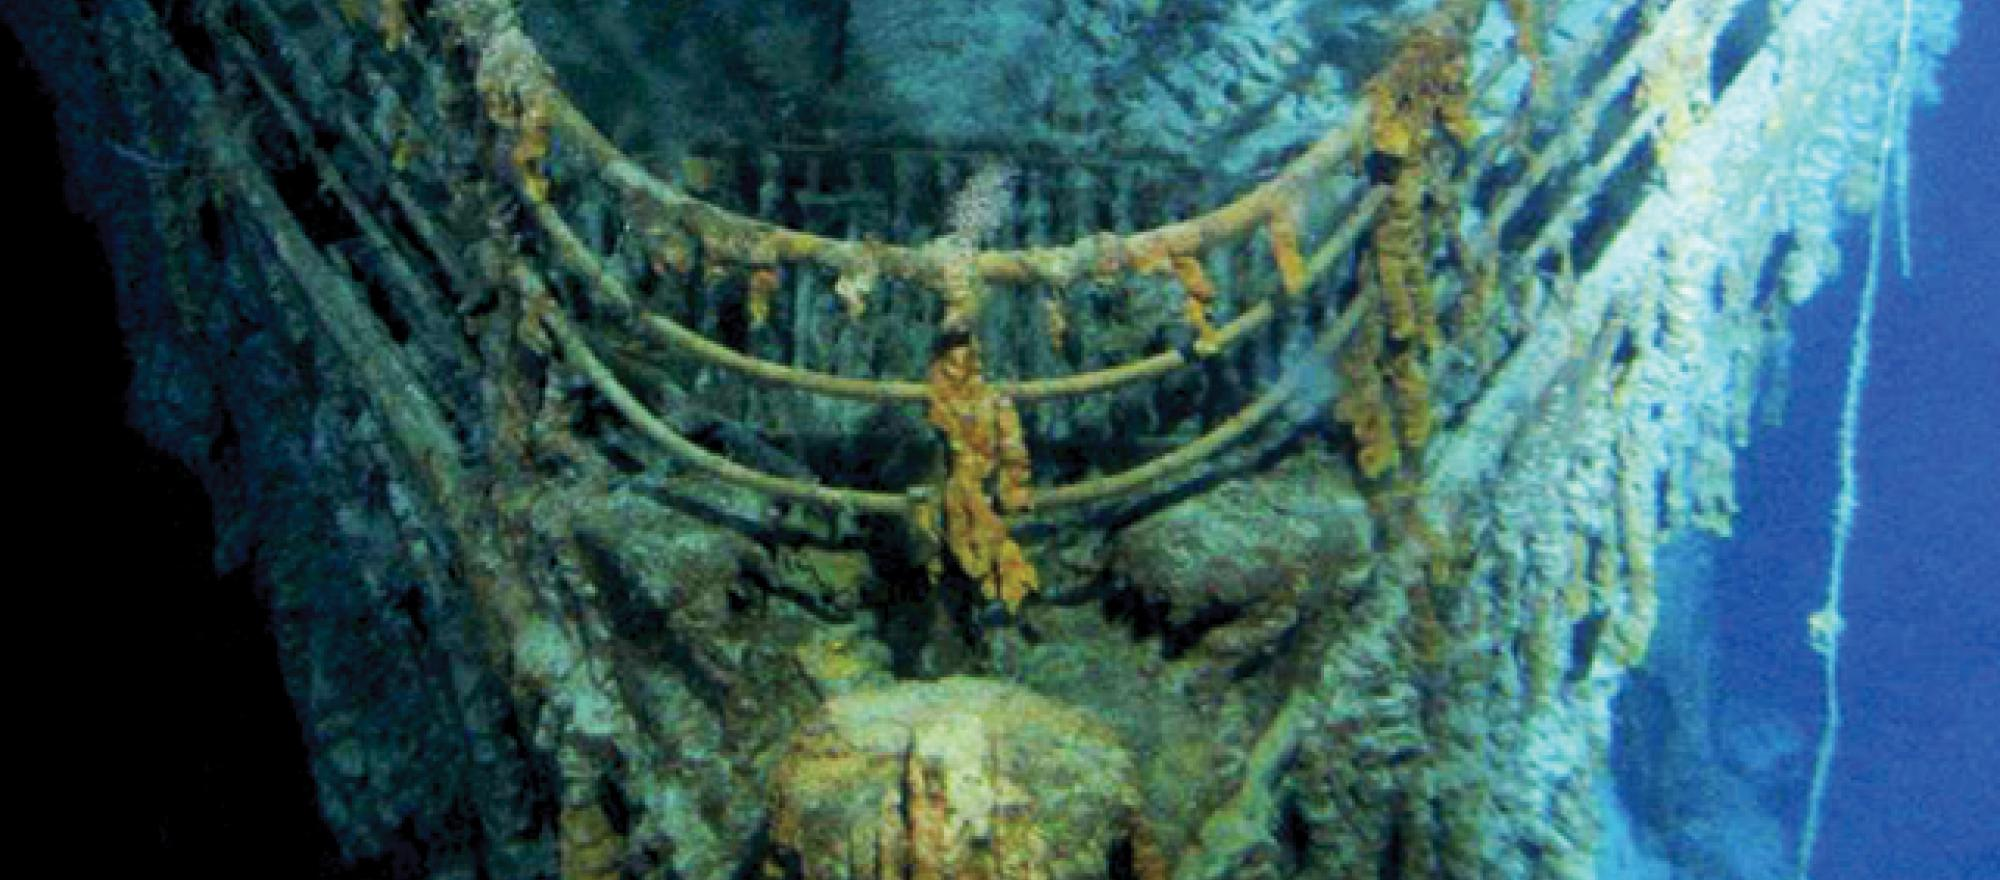 Where the 'Unsinkable' Titanic Sank